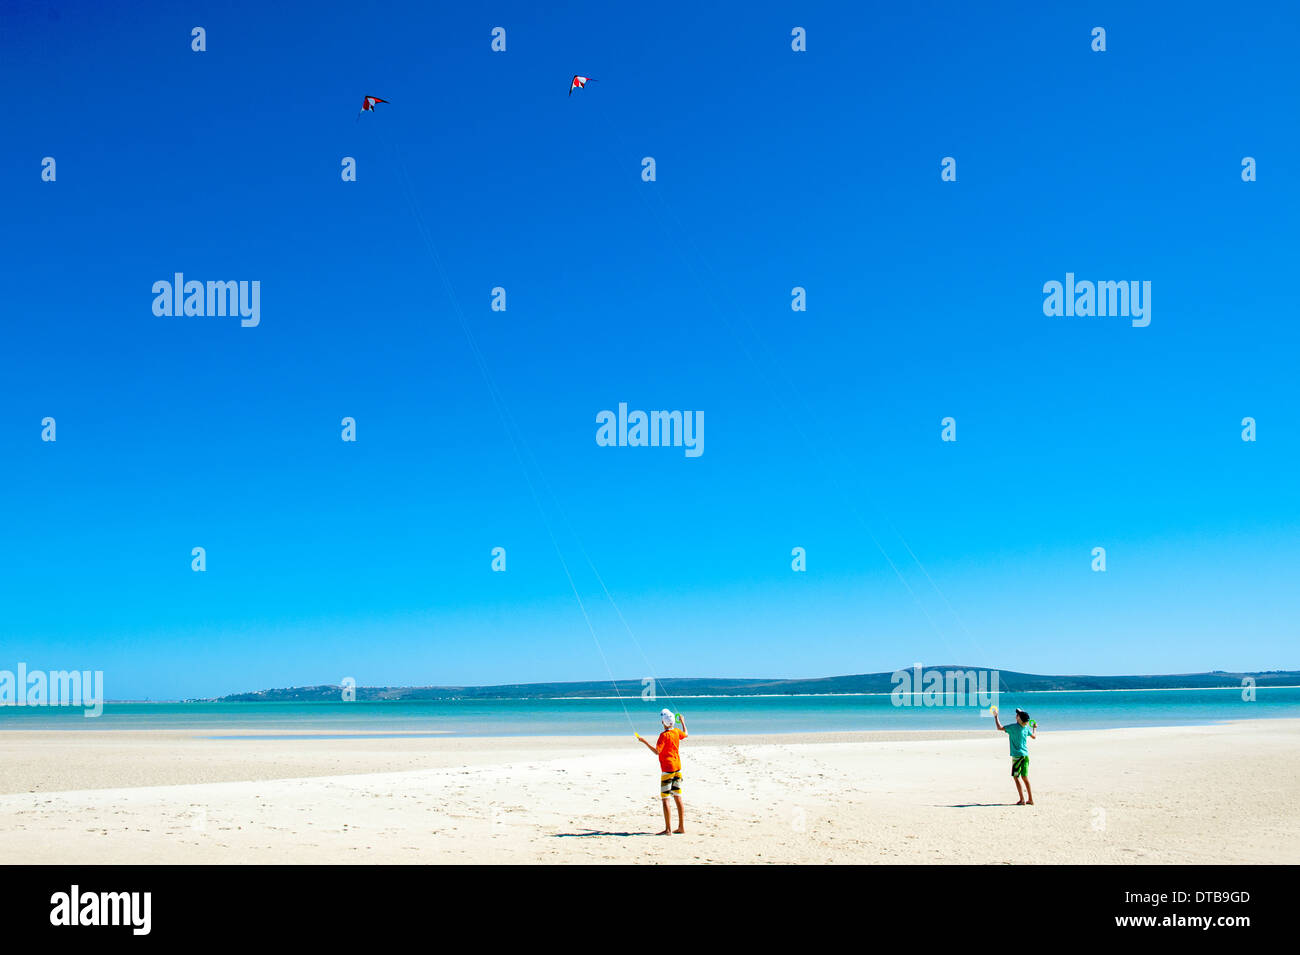 Two boys flying kites on the beach of a lagoon, Churchhaven, Western Cape, South Africa - Stock Image